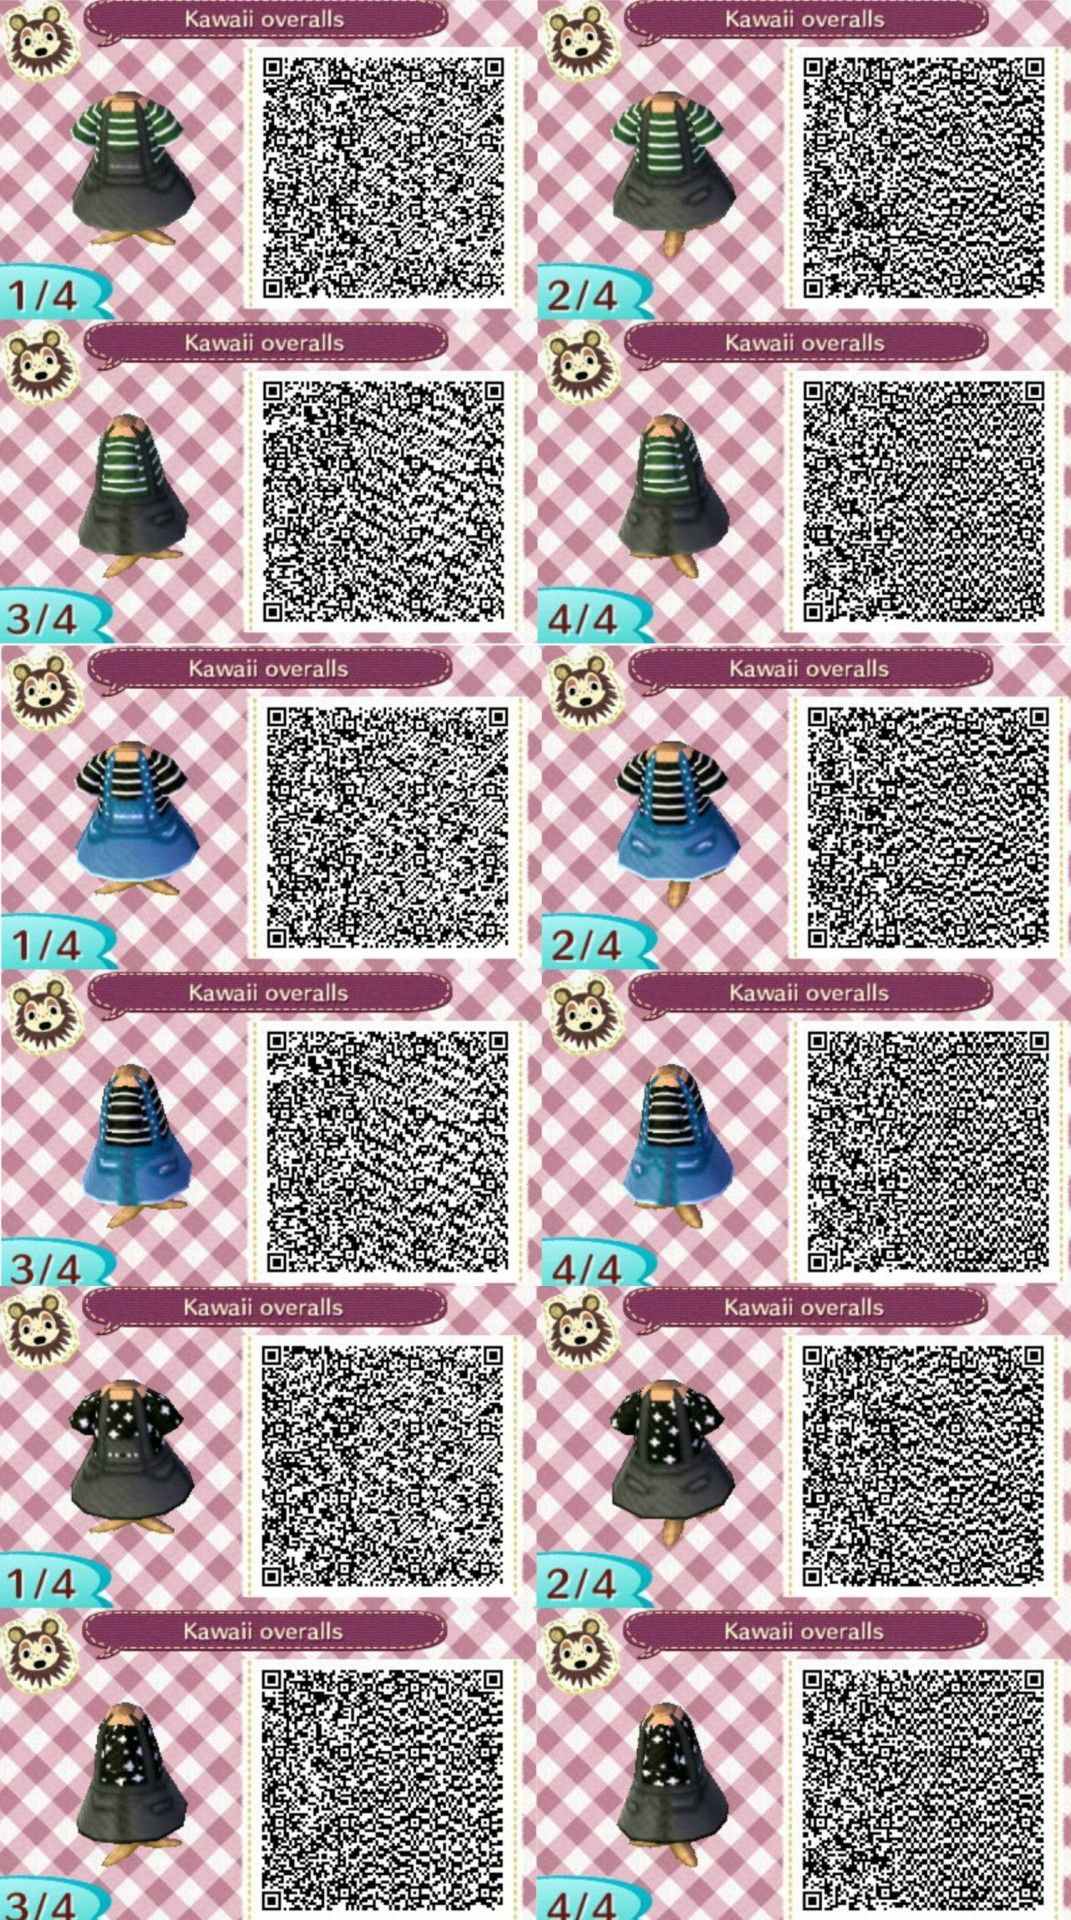 Here Are Some Overall Designs I Made Animal Crossing Qr